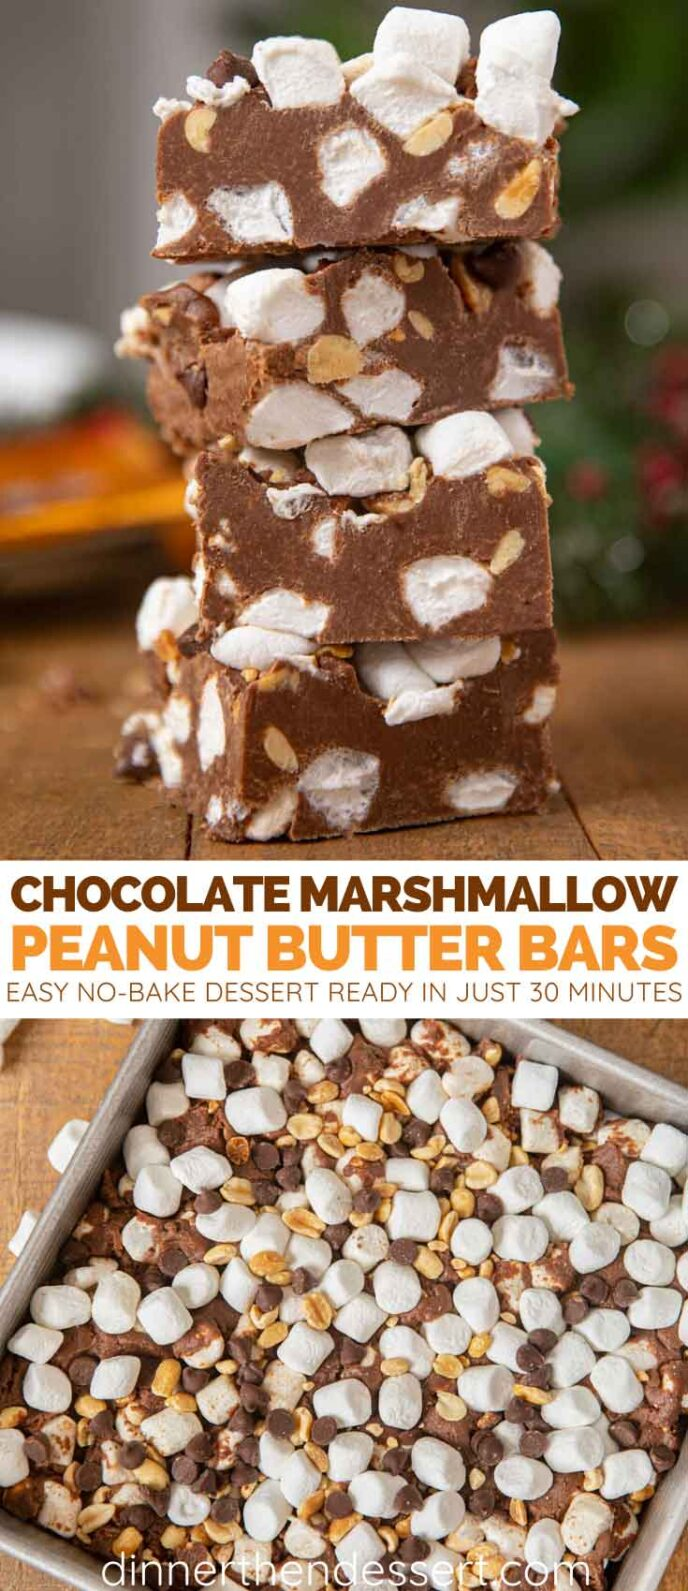 Peanut Butter Chocolate Marshmallow Bars collage